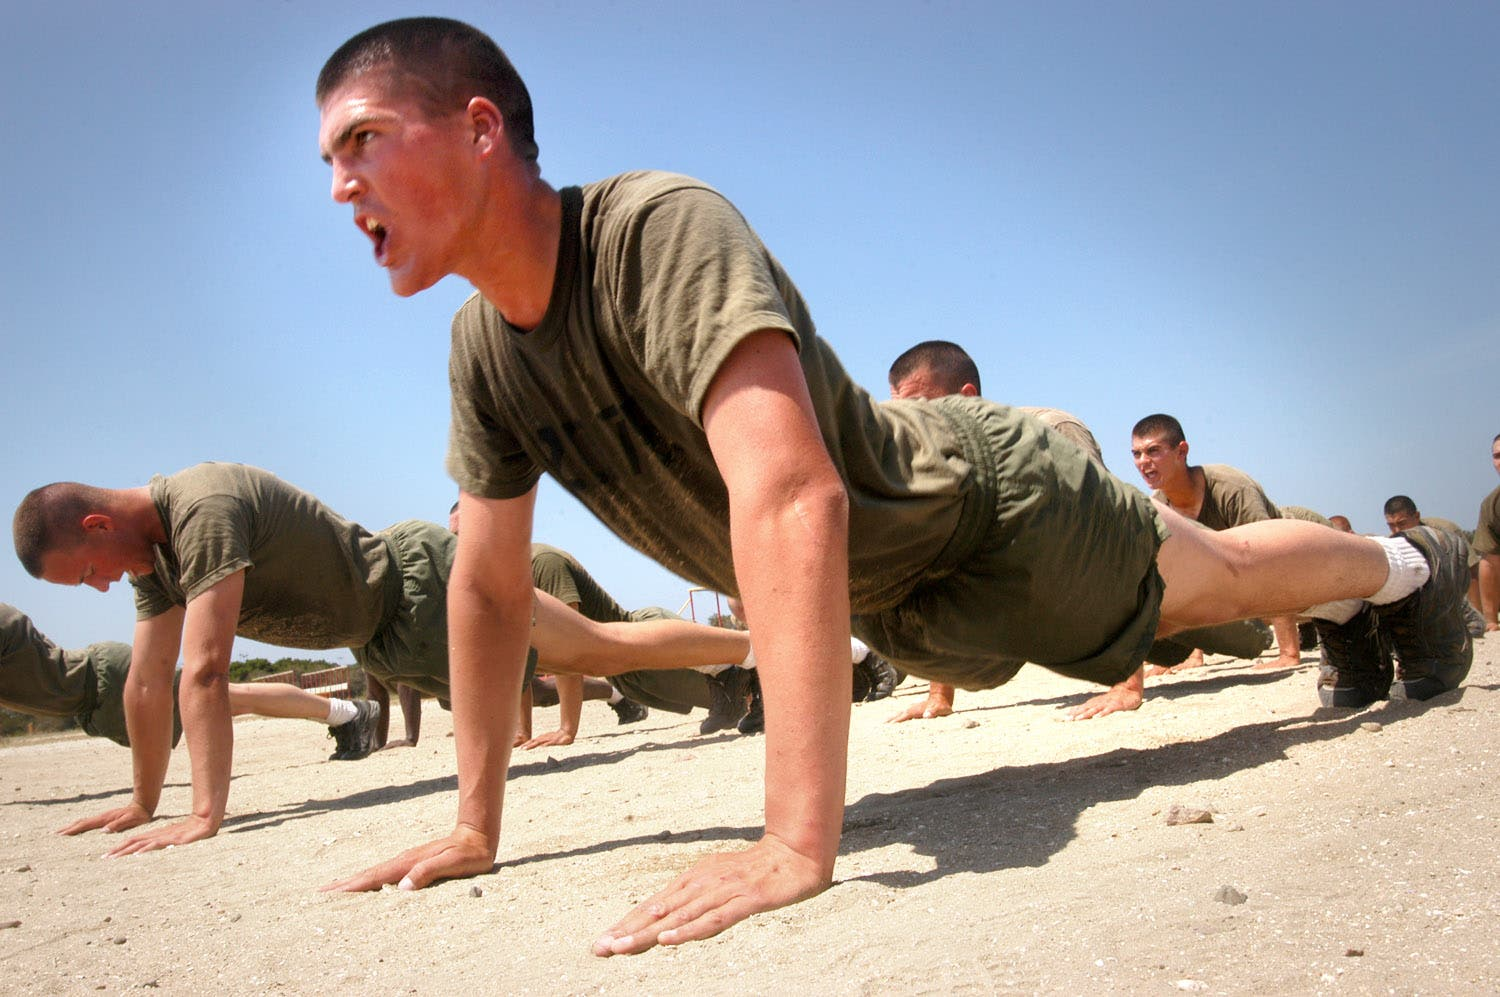 Photograph for illustrative Purposes Only. Photo by: PFC Charlie Chavez. (Source: Commons Wikimedia)